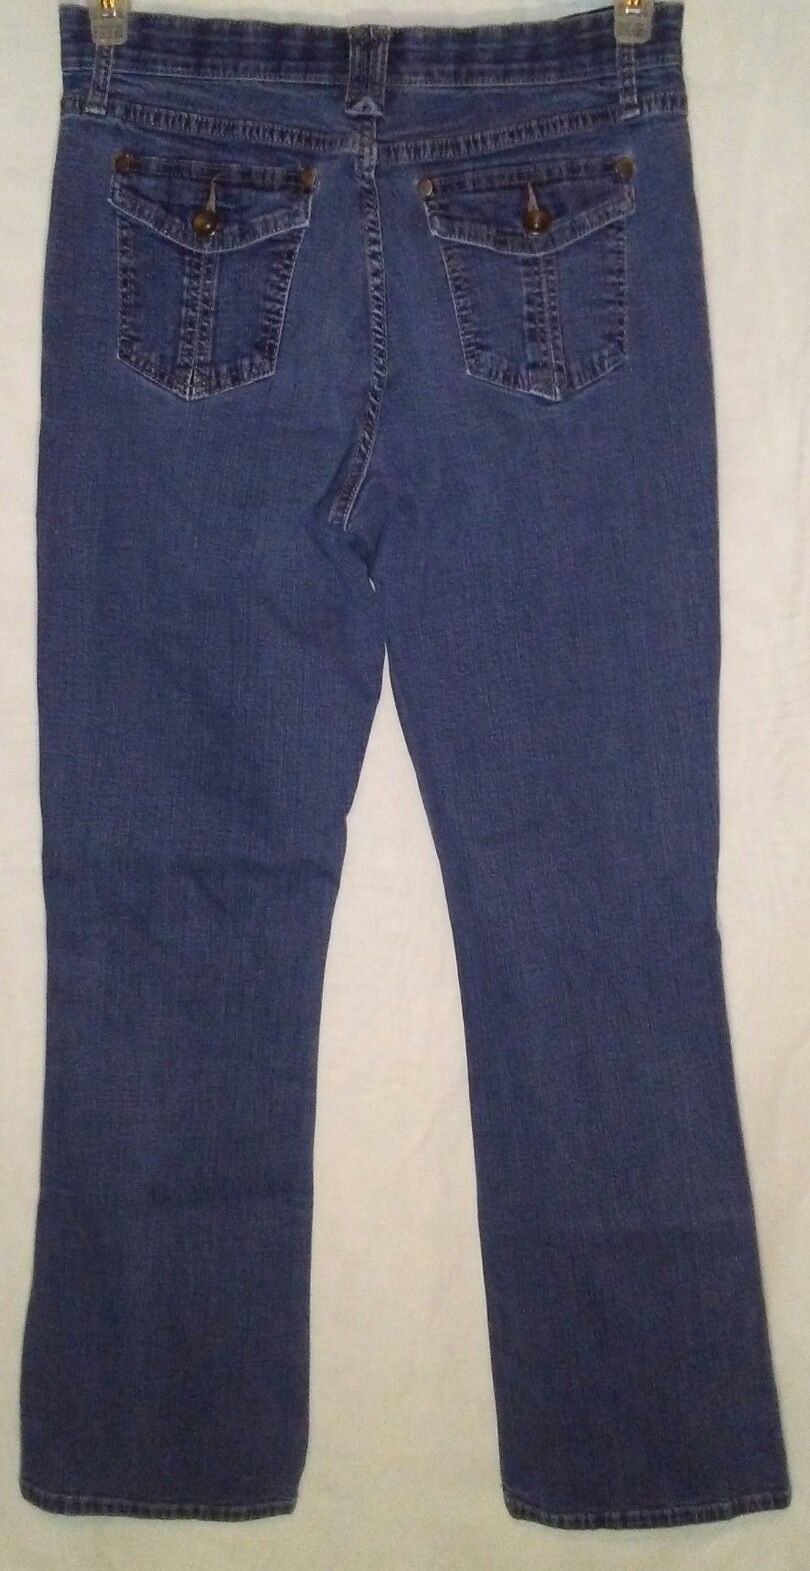 Lee Womens Jeans Size 10 Comfort Waistband Bootcut Medium Wash Flap Pockets